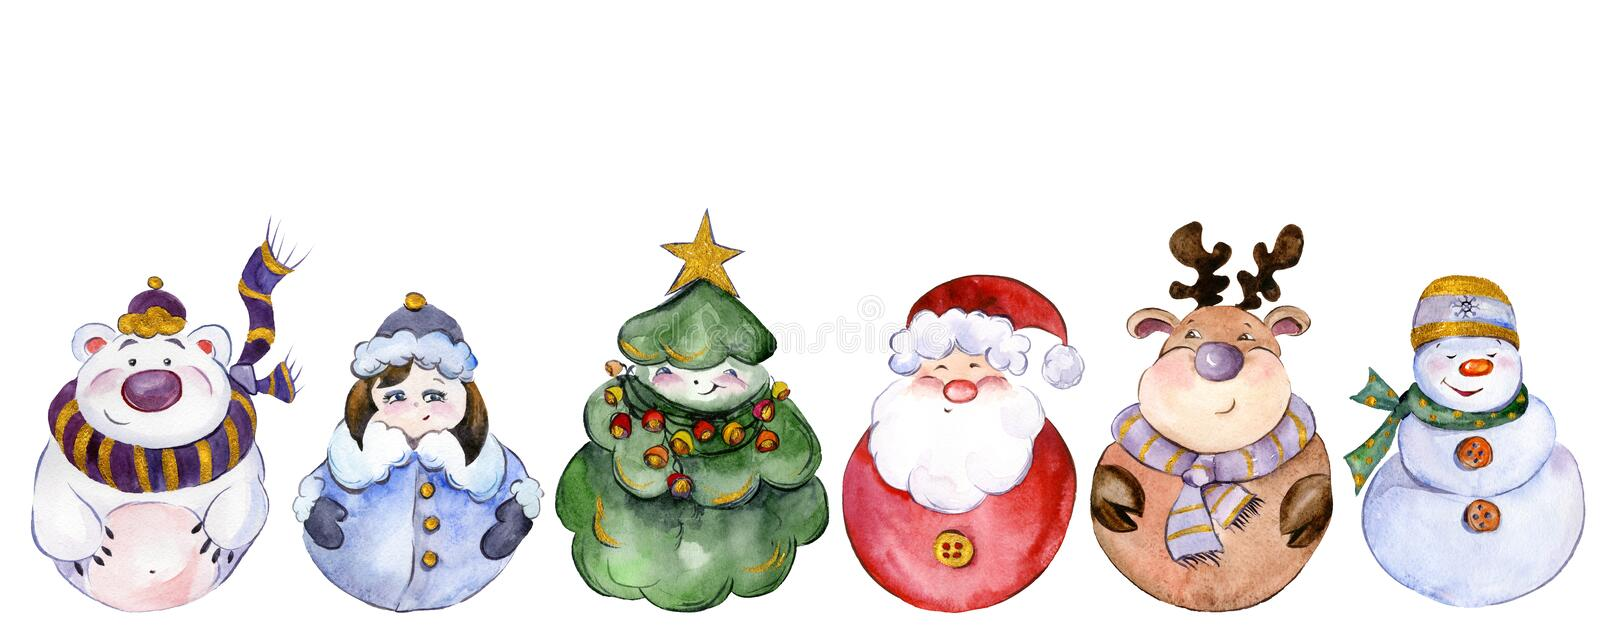 Set of Christmas characters isolated on white background vector illustration